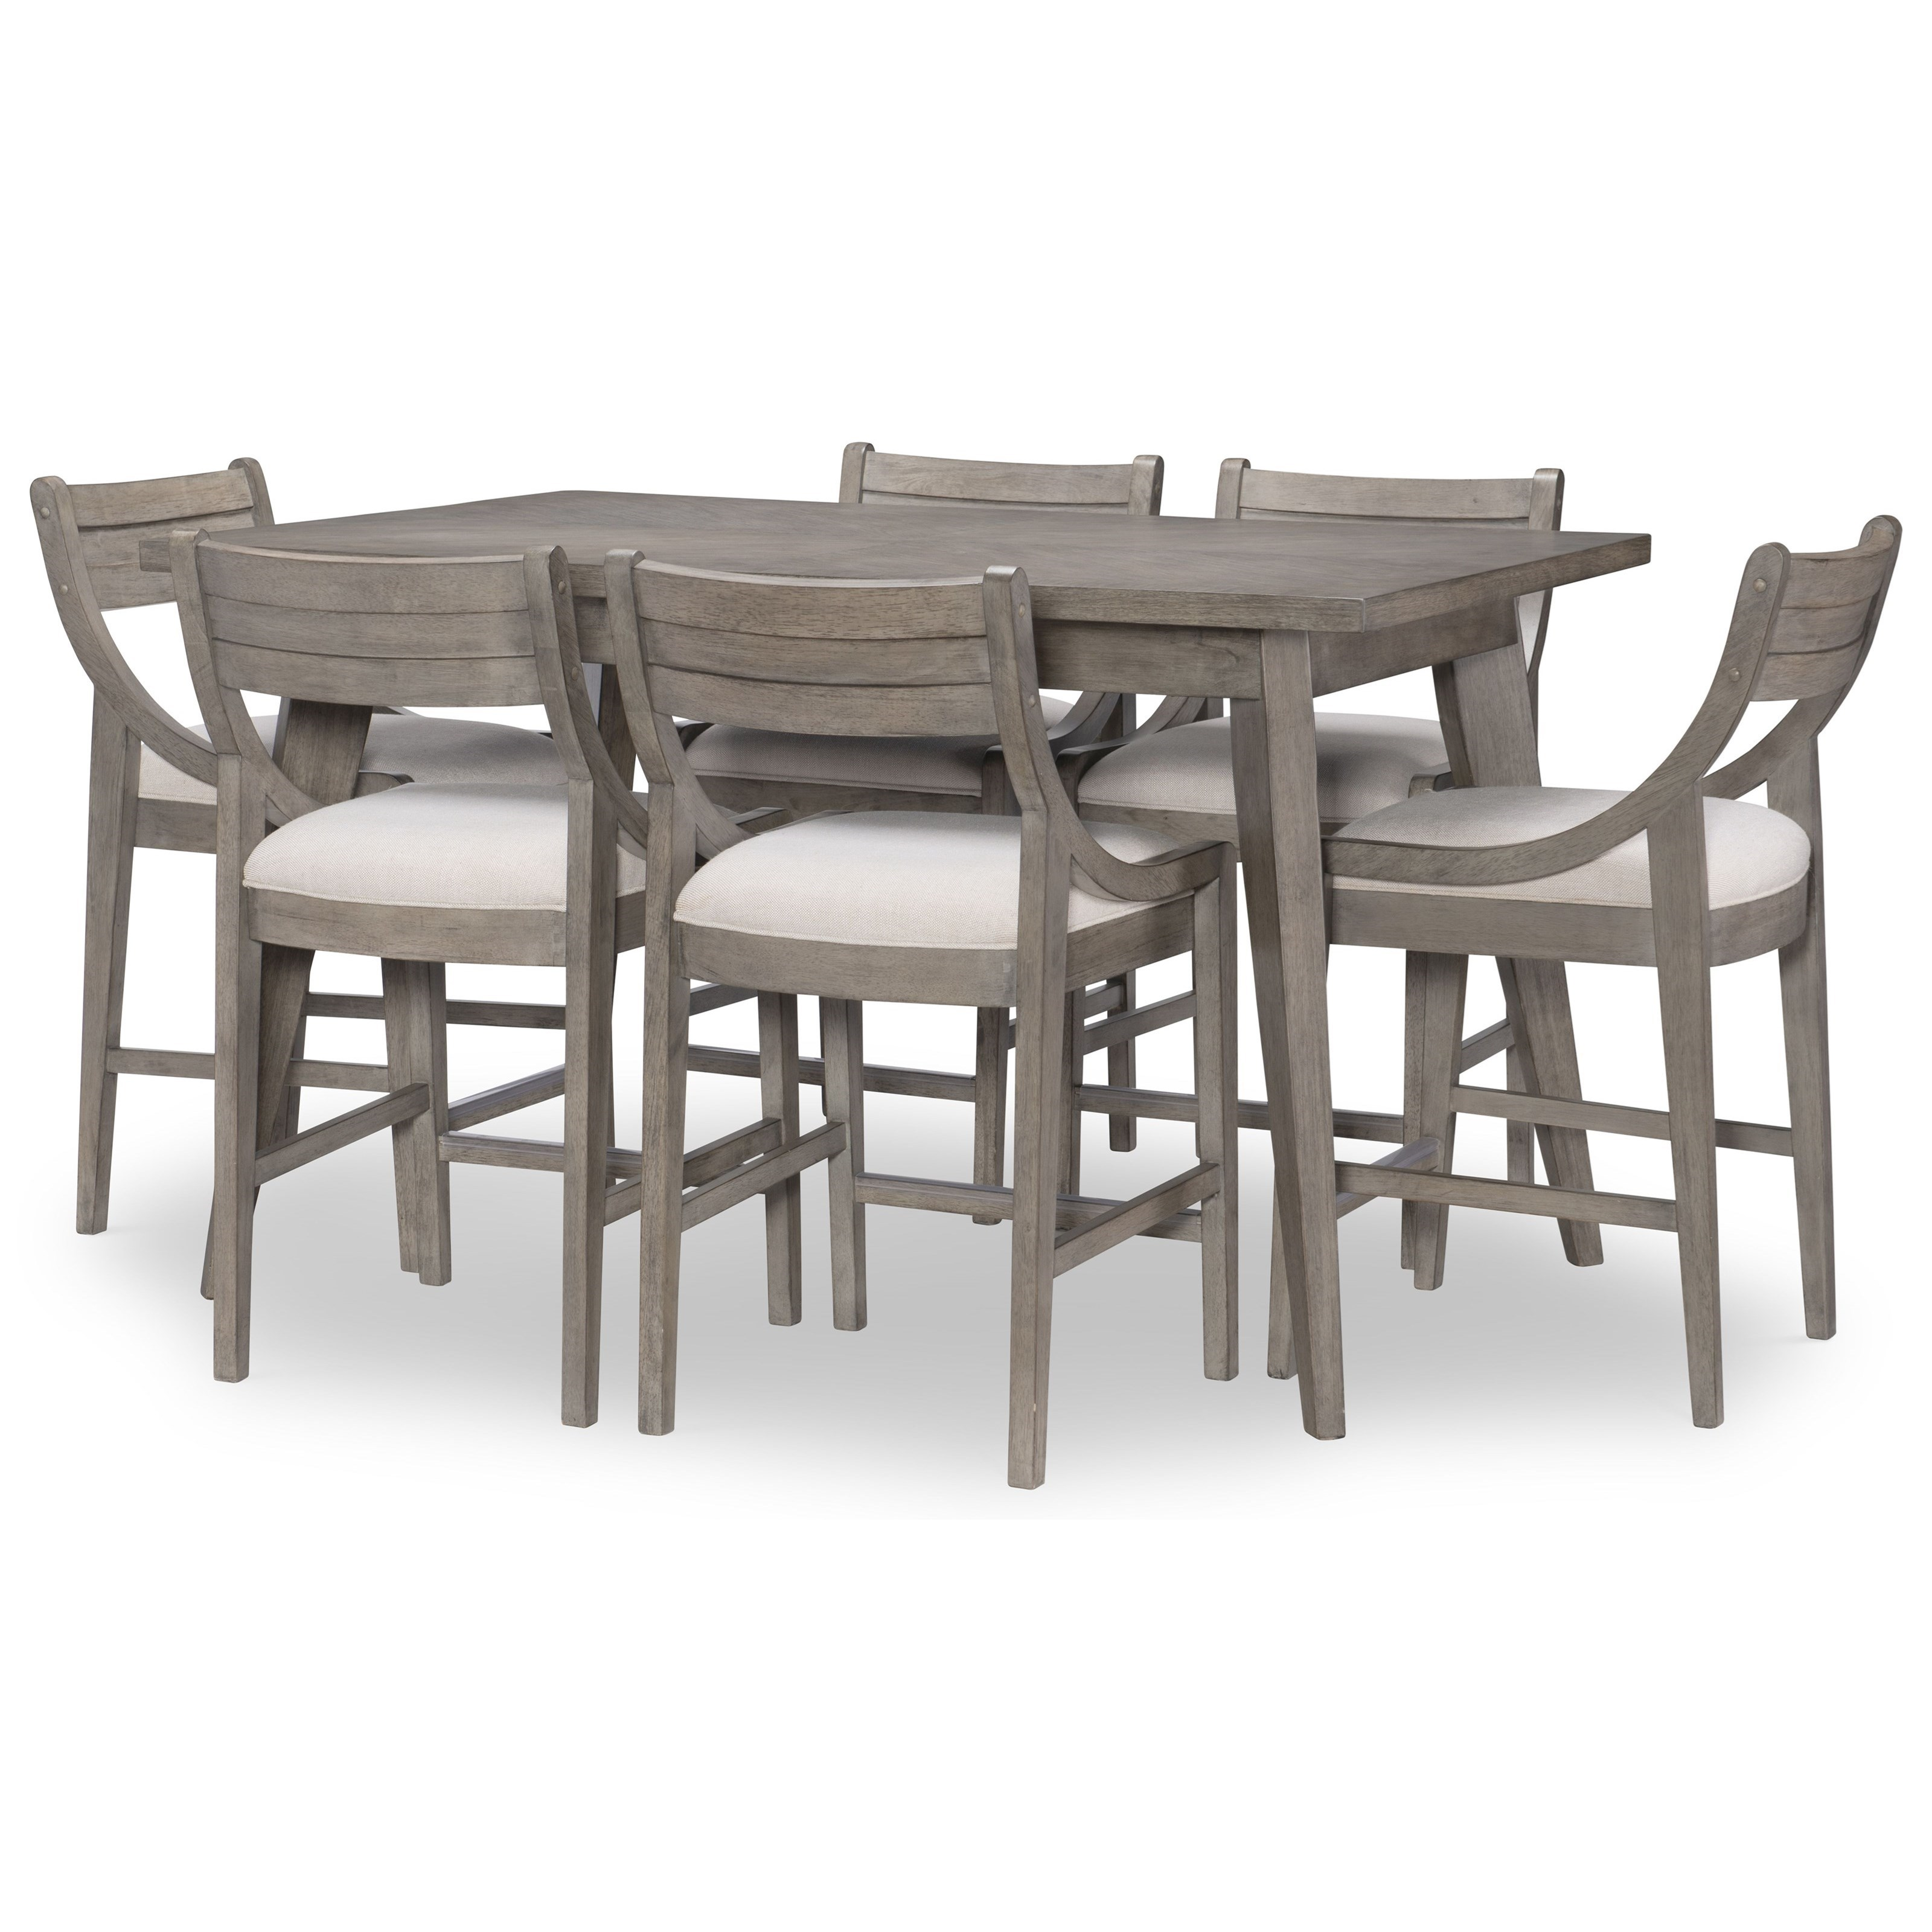 Greystone 7-Piece Pub Table and Chair Set by Legacy Classic at Johnny Janosik